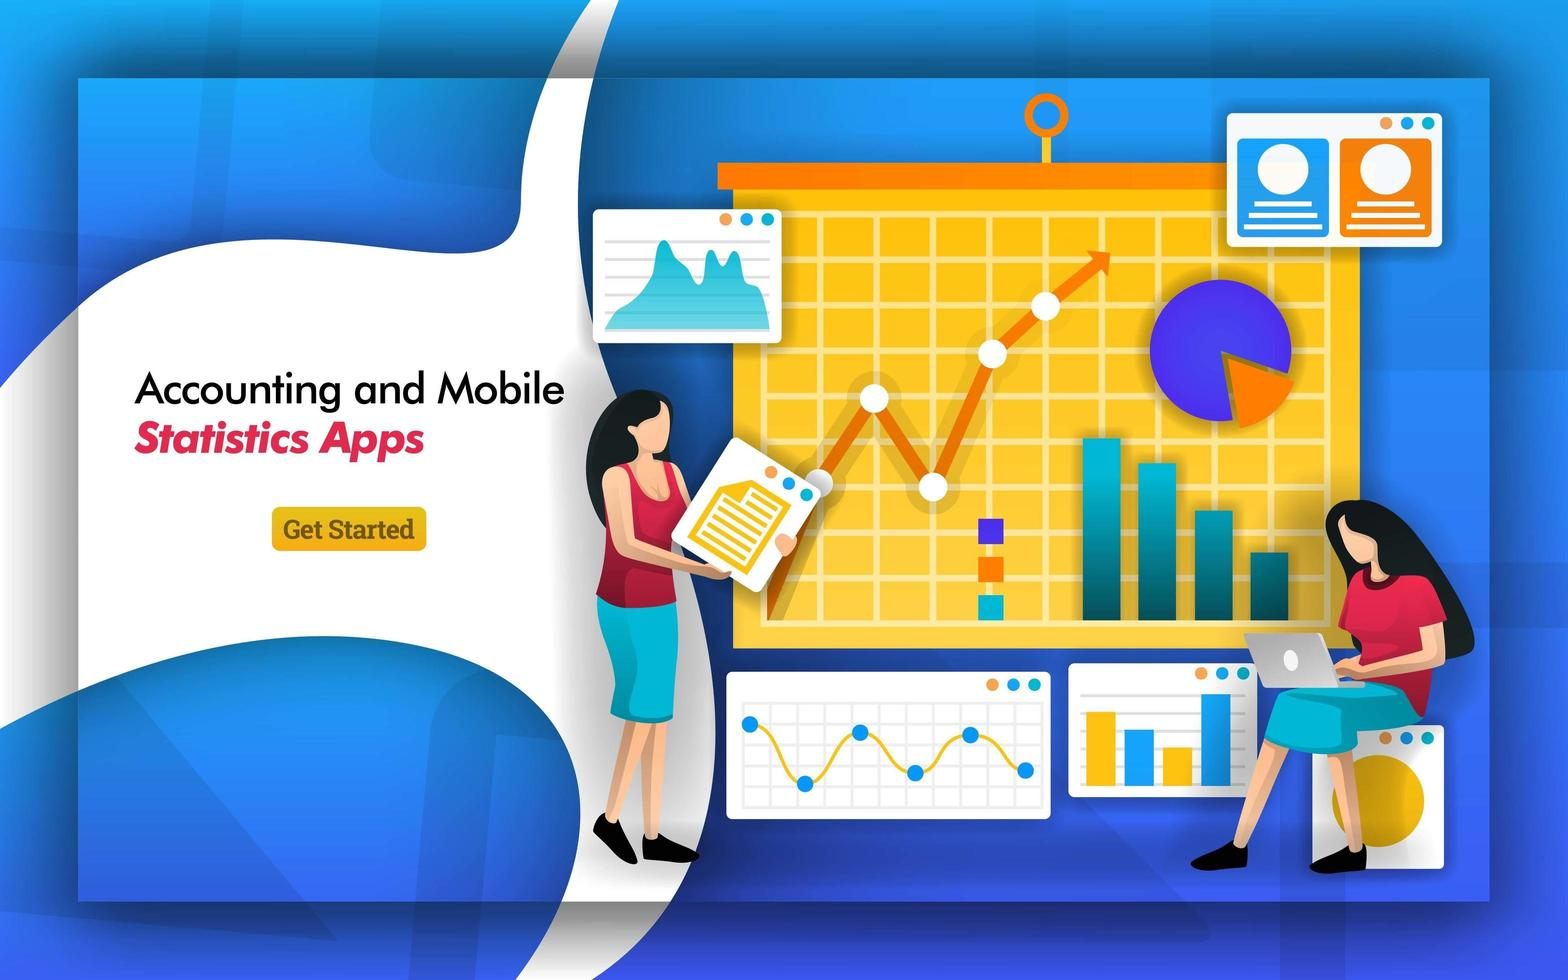 accountant need statistics for bookkeeping. accounting firms have mobile statistics apps to manage data from a company. analysis includes tax, payroll, finance, income and data flow. Flat vector style